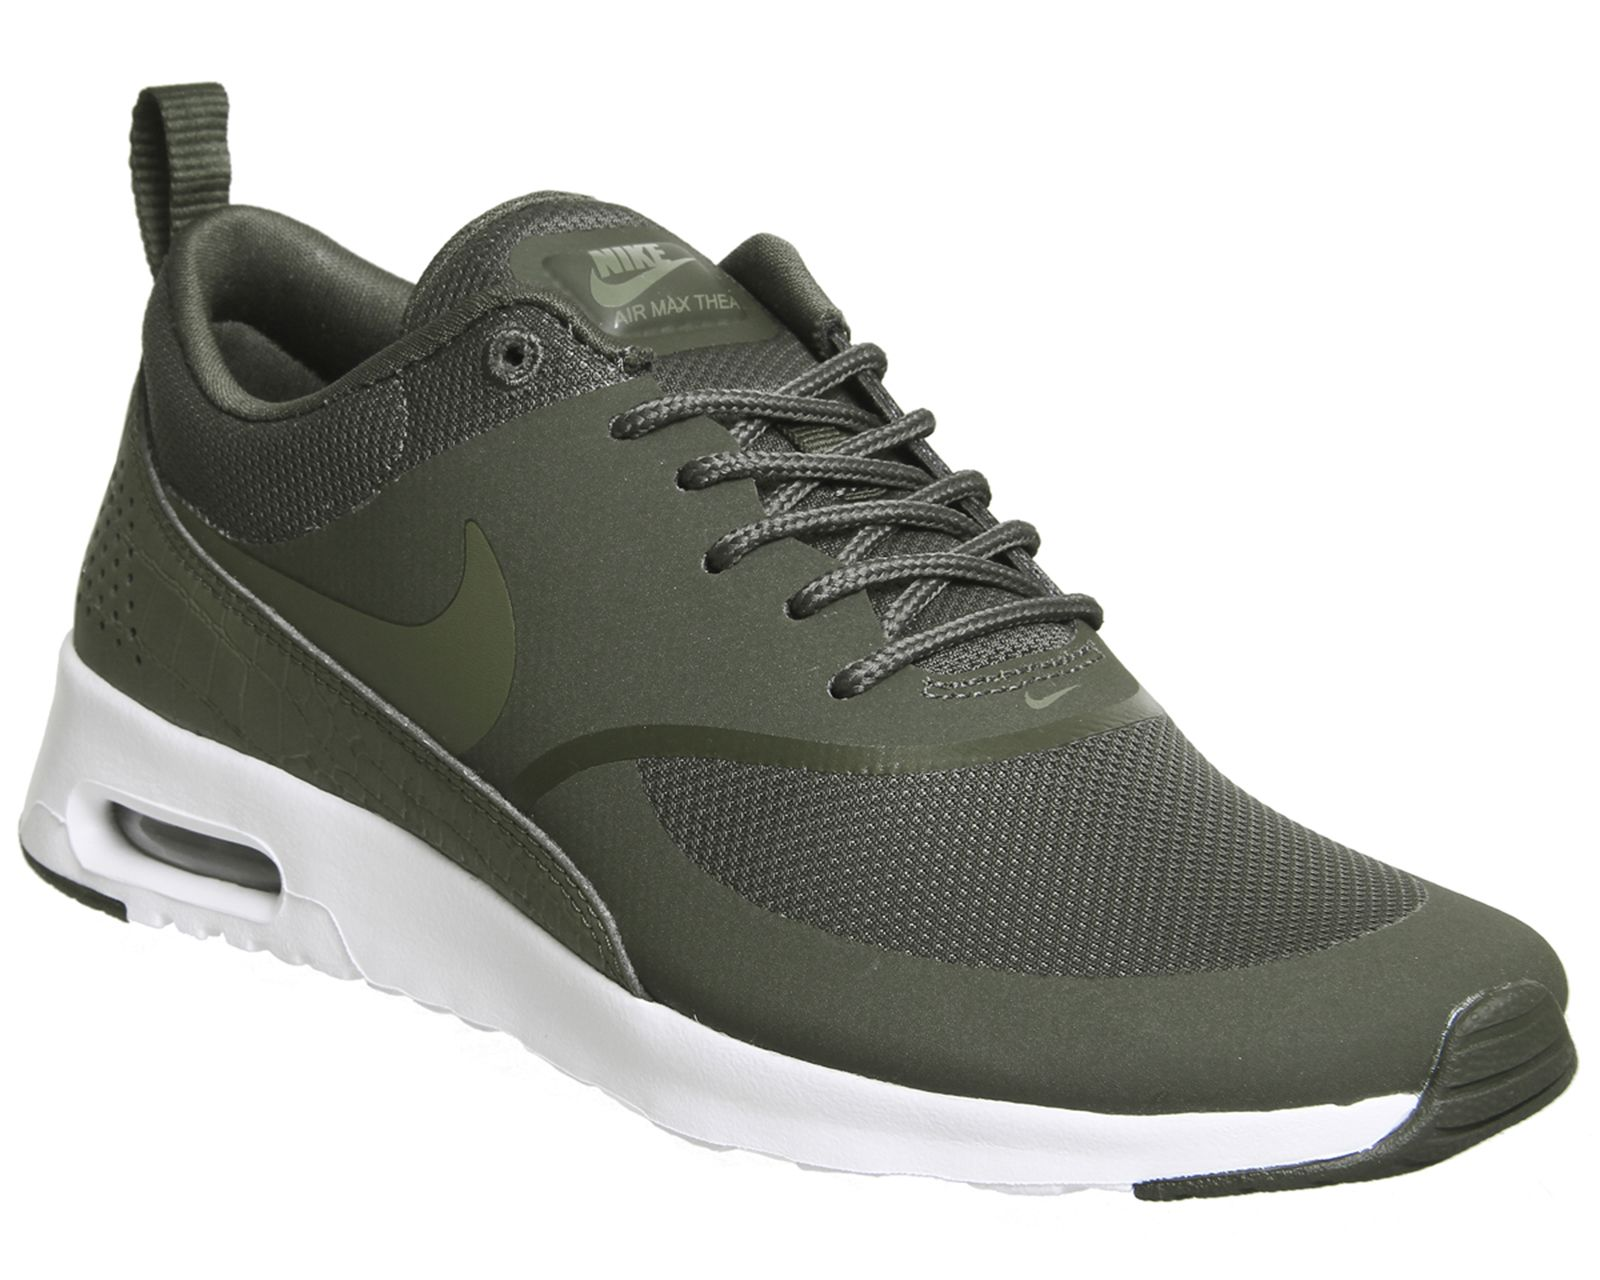 Air Max Thea Nike Thea Trainers Outfit Dream Shoes